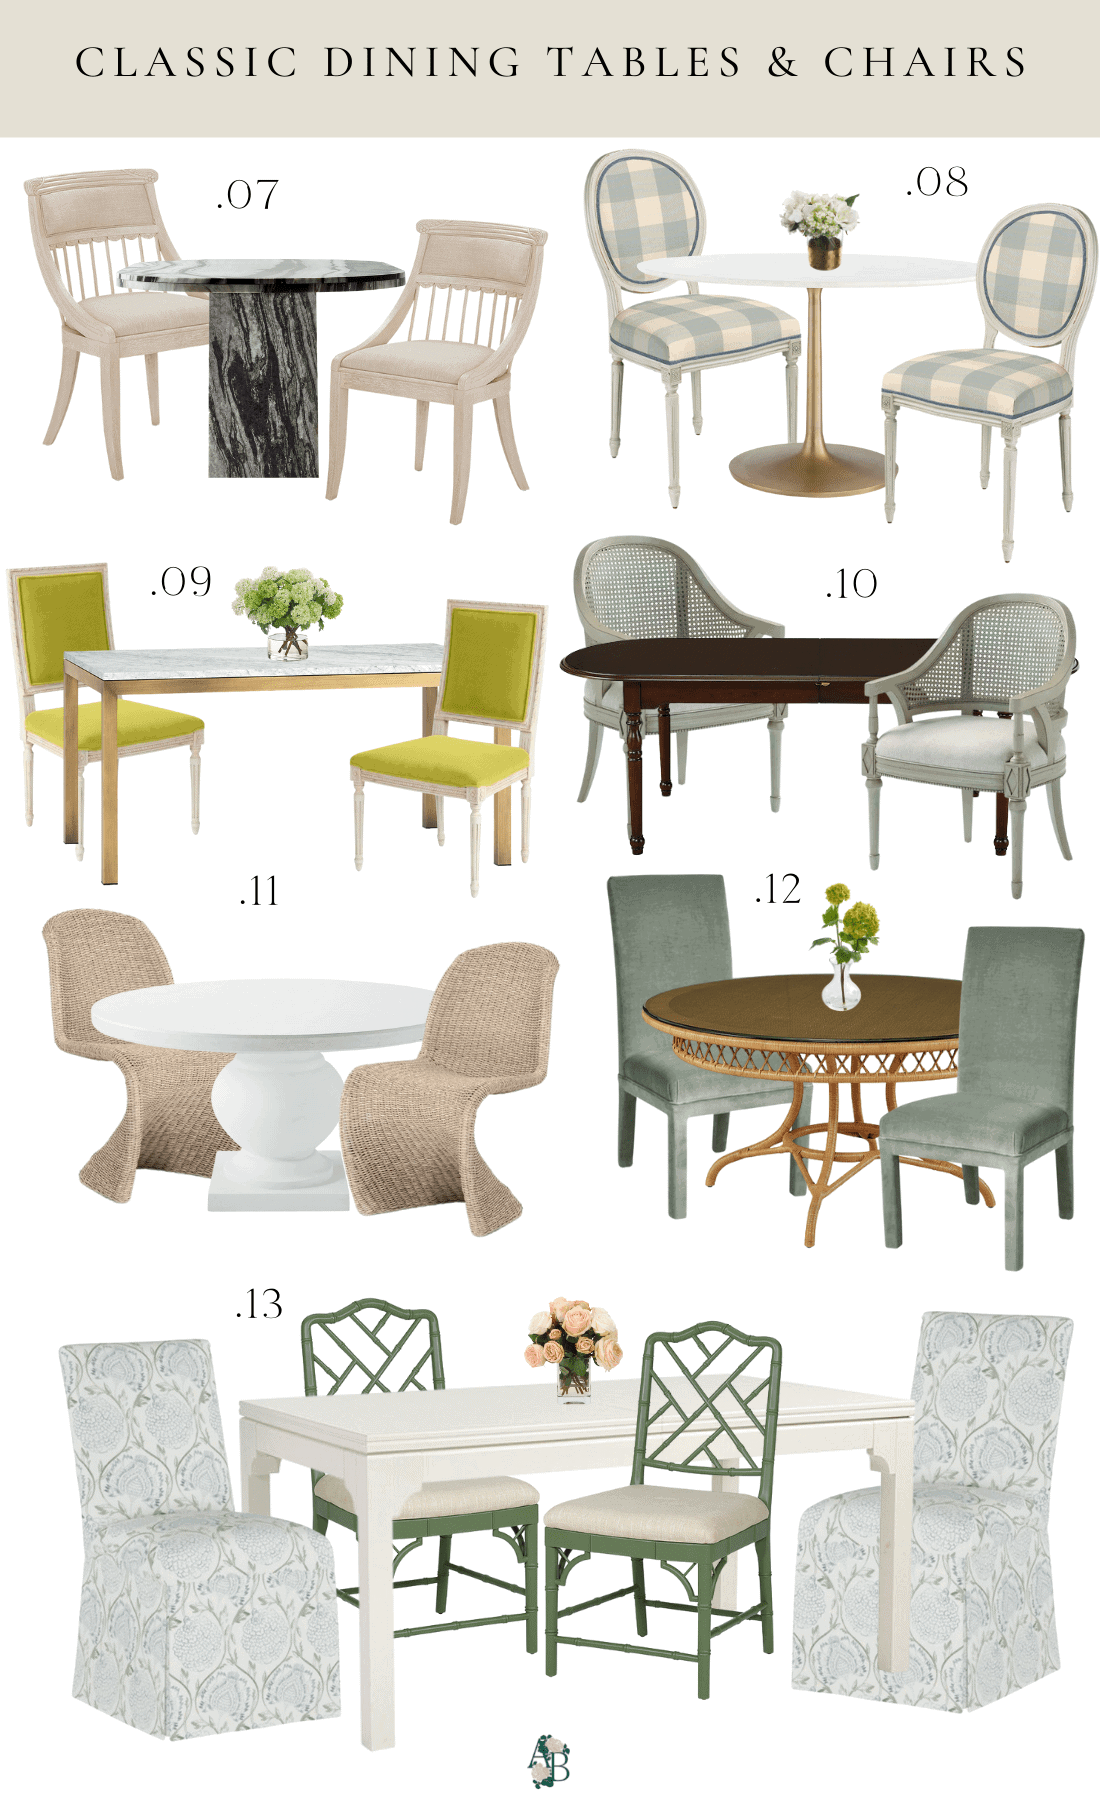 dining-table-chair-combinations-inspiration-classic-style